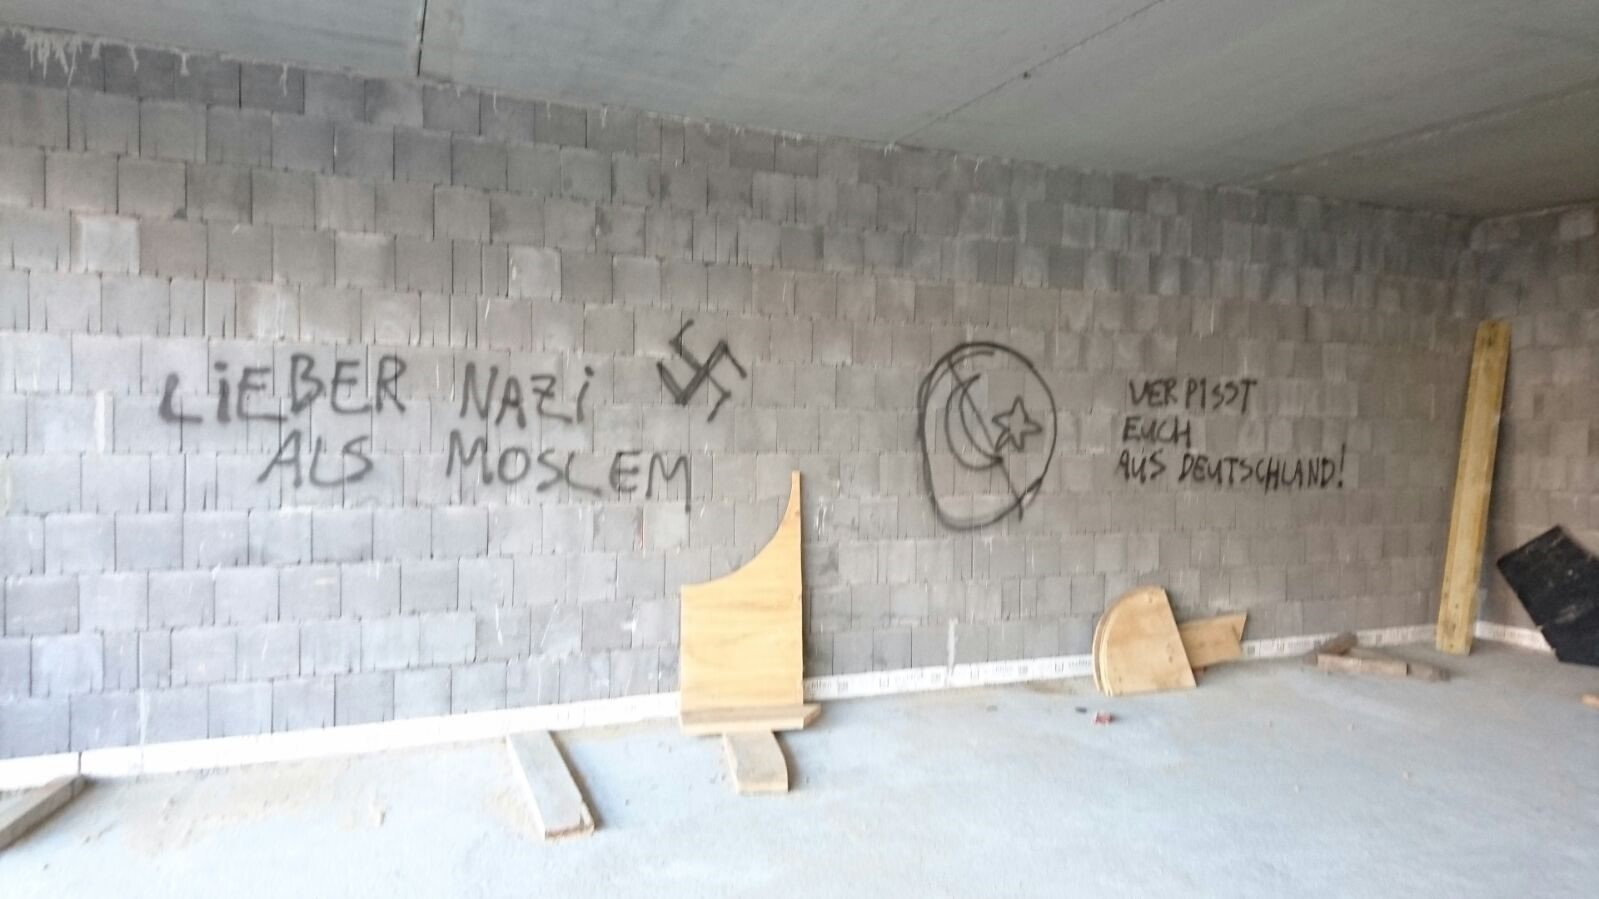 Unidentified attackers draw Nazi symbols on the walls of the Ulu Camii mosque that is under construction in Germanyu2019s Hamm. (AA Photo)